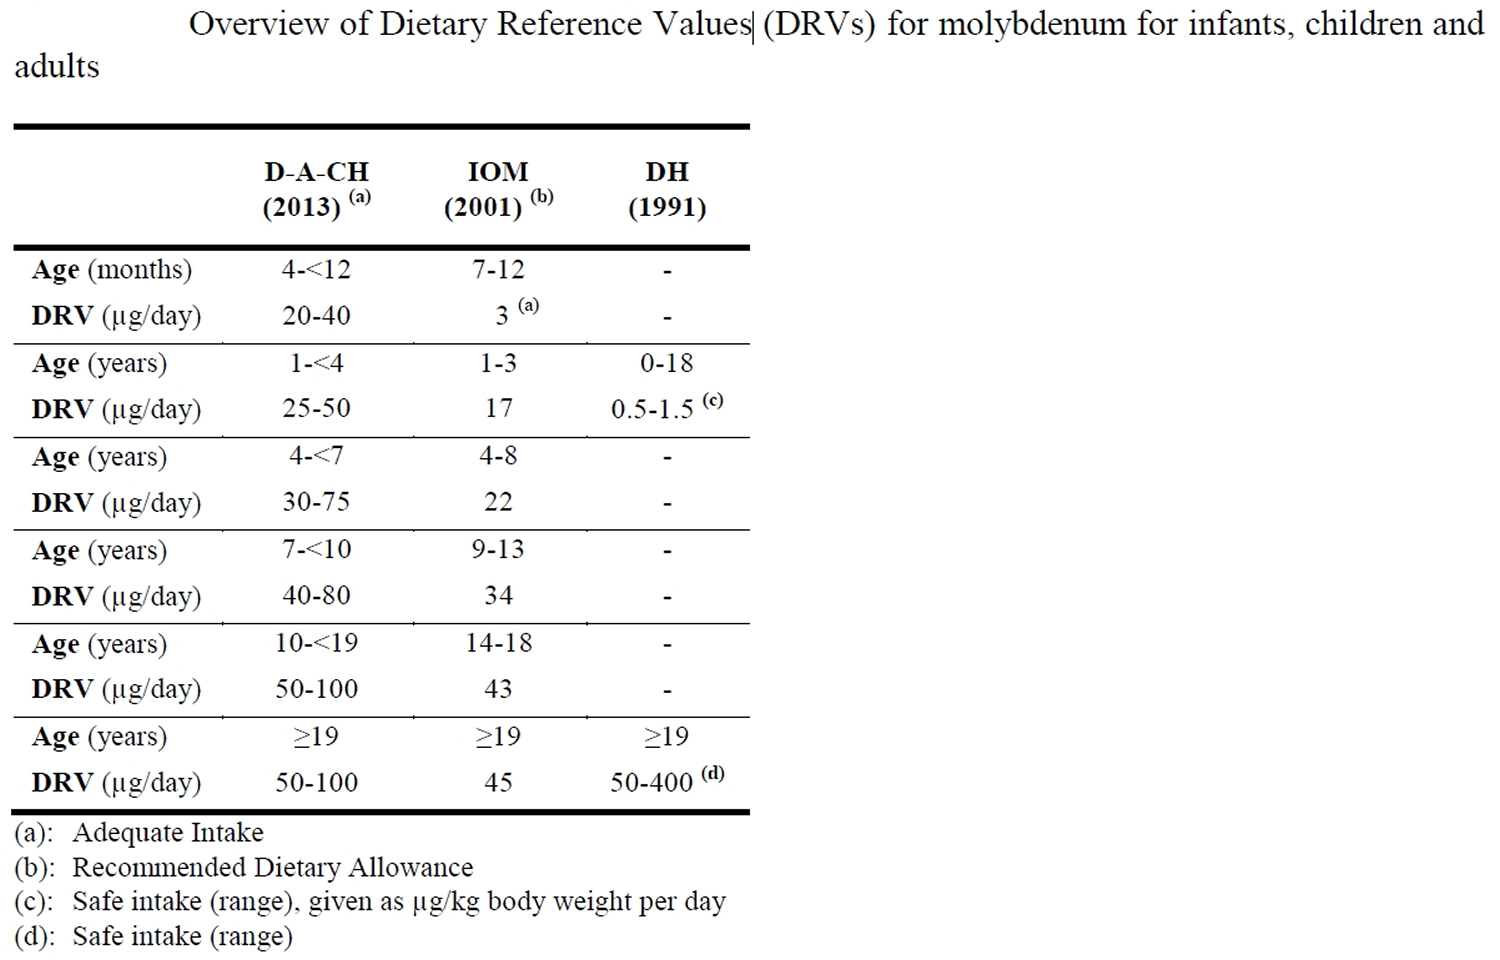 molybdenum dietary reference values